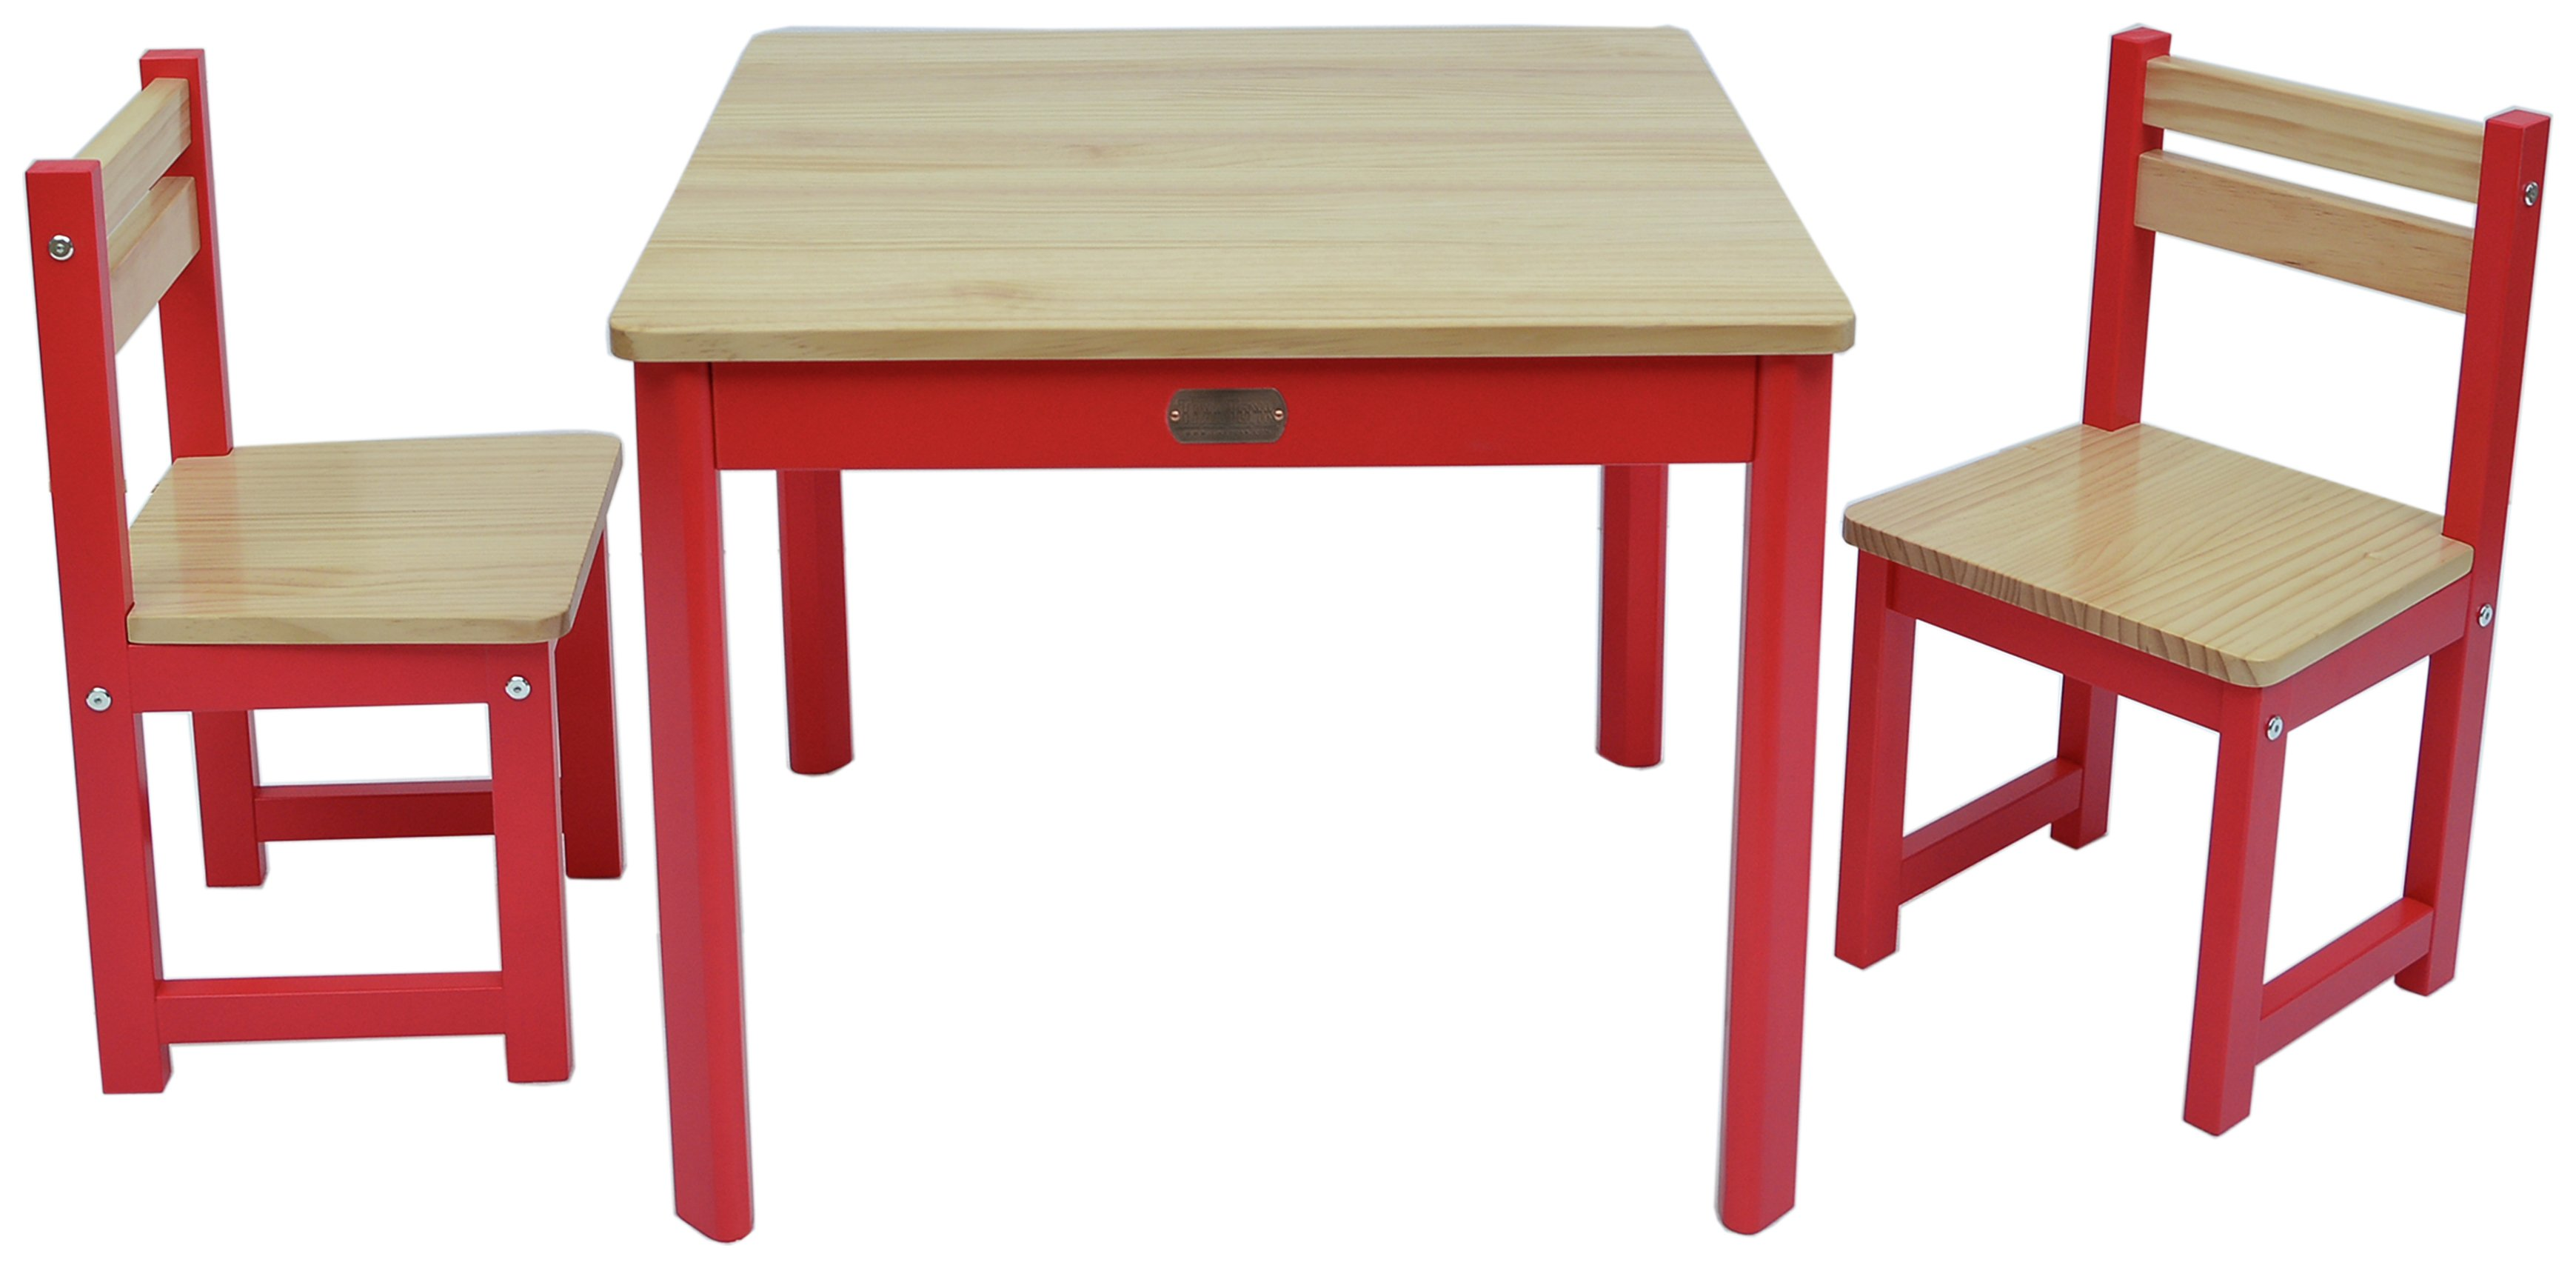 Tikk tokk boss wooden nursery table and chairs octer for 99 normal table